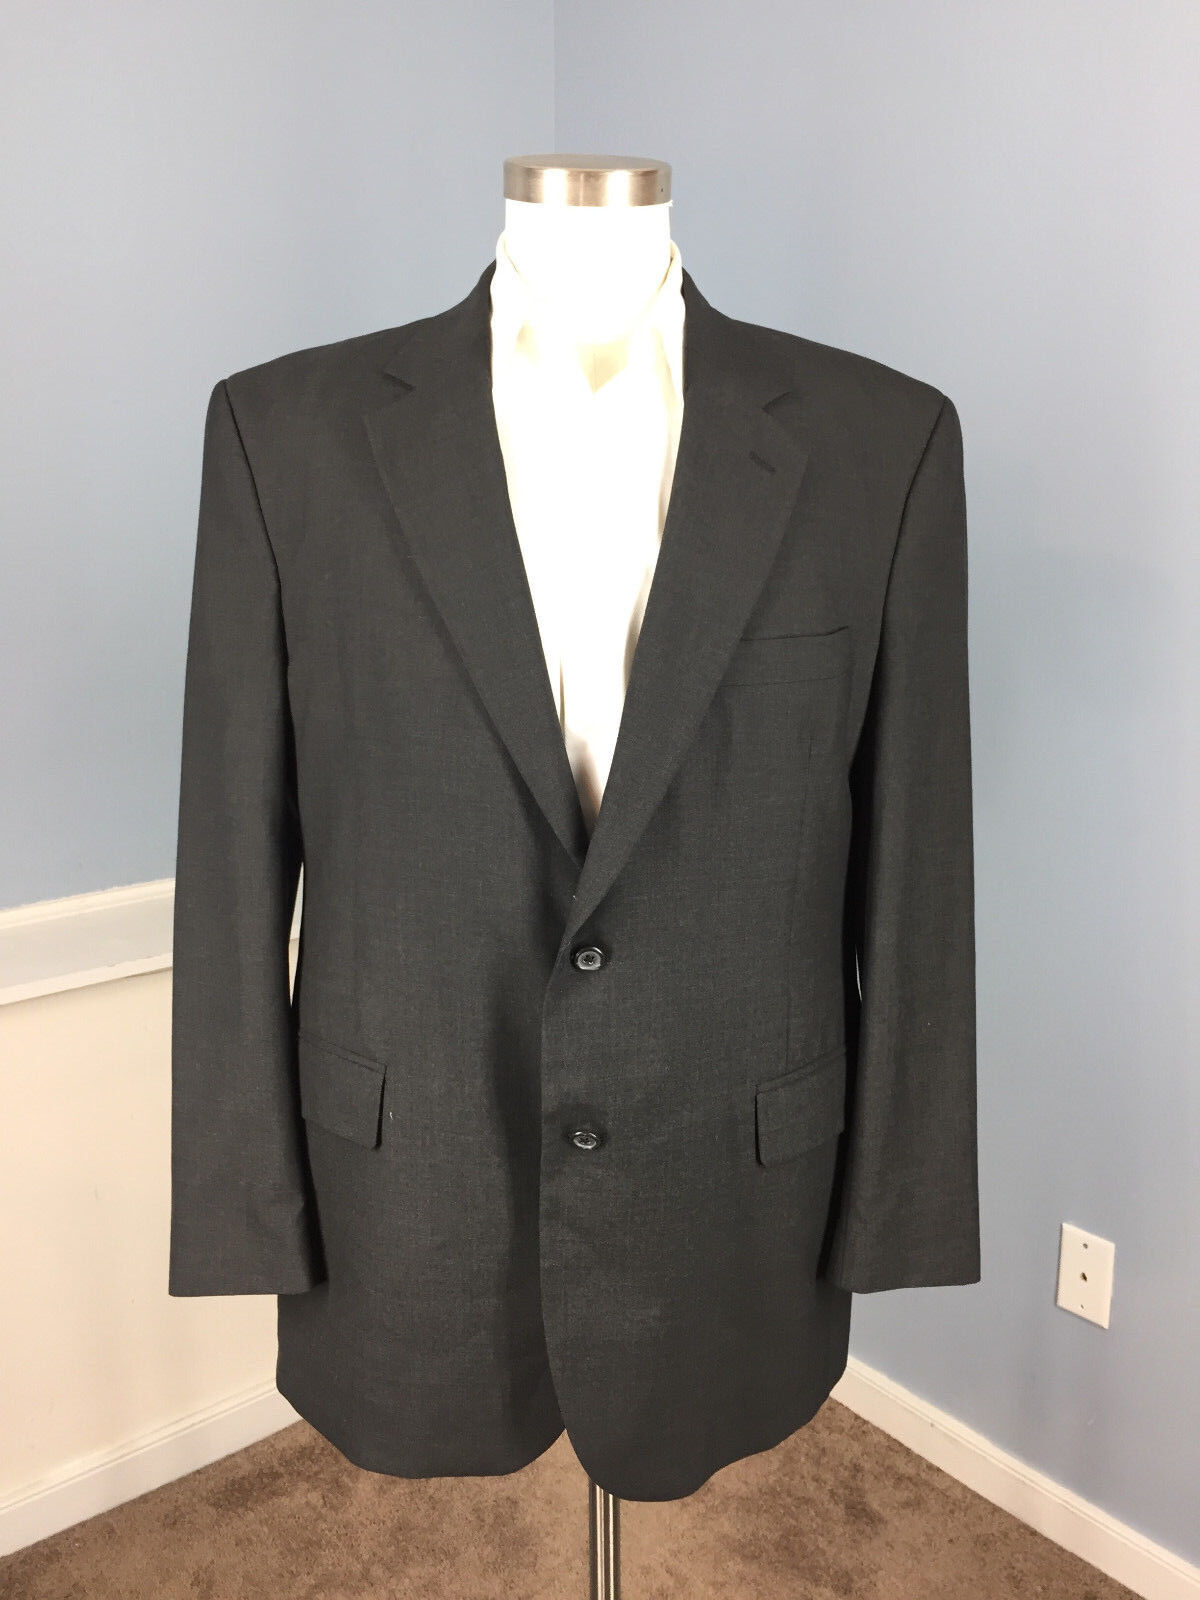 JOS A BANK Charcoal grau Suit 44 R 100% wool Excellent flat front 37 W